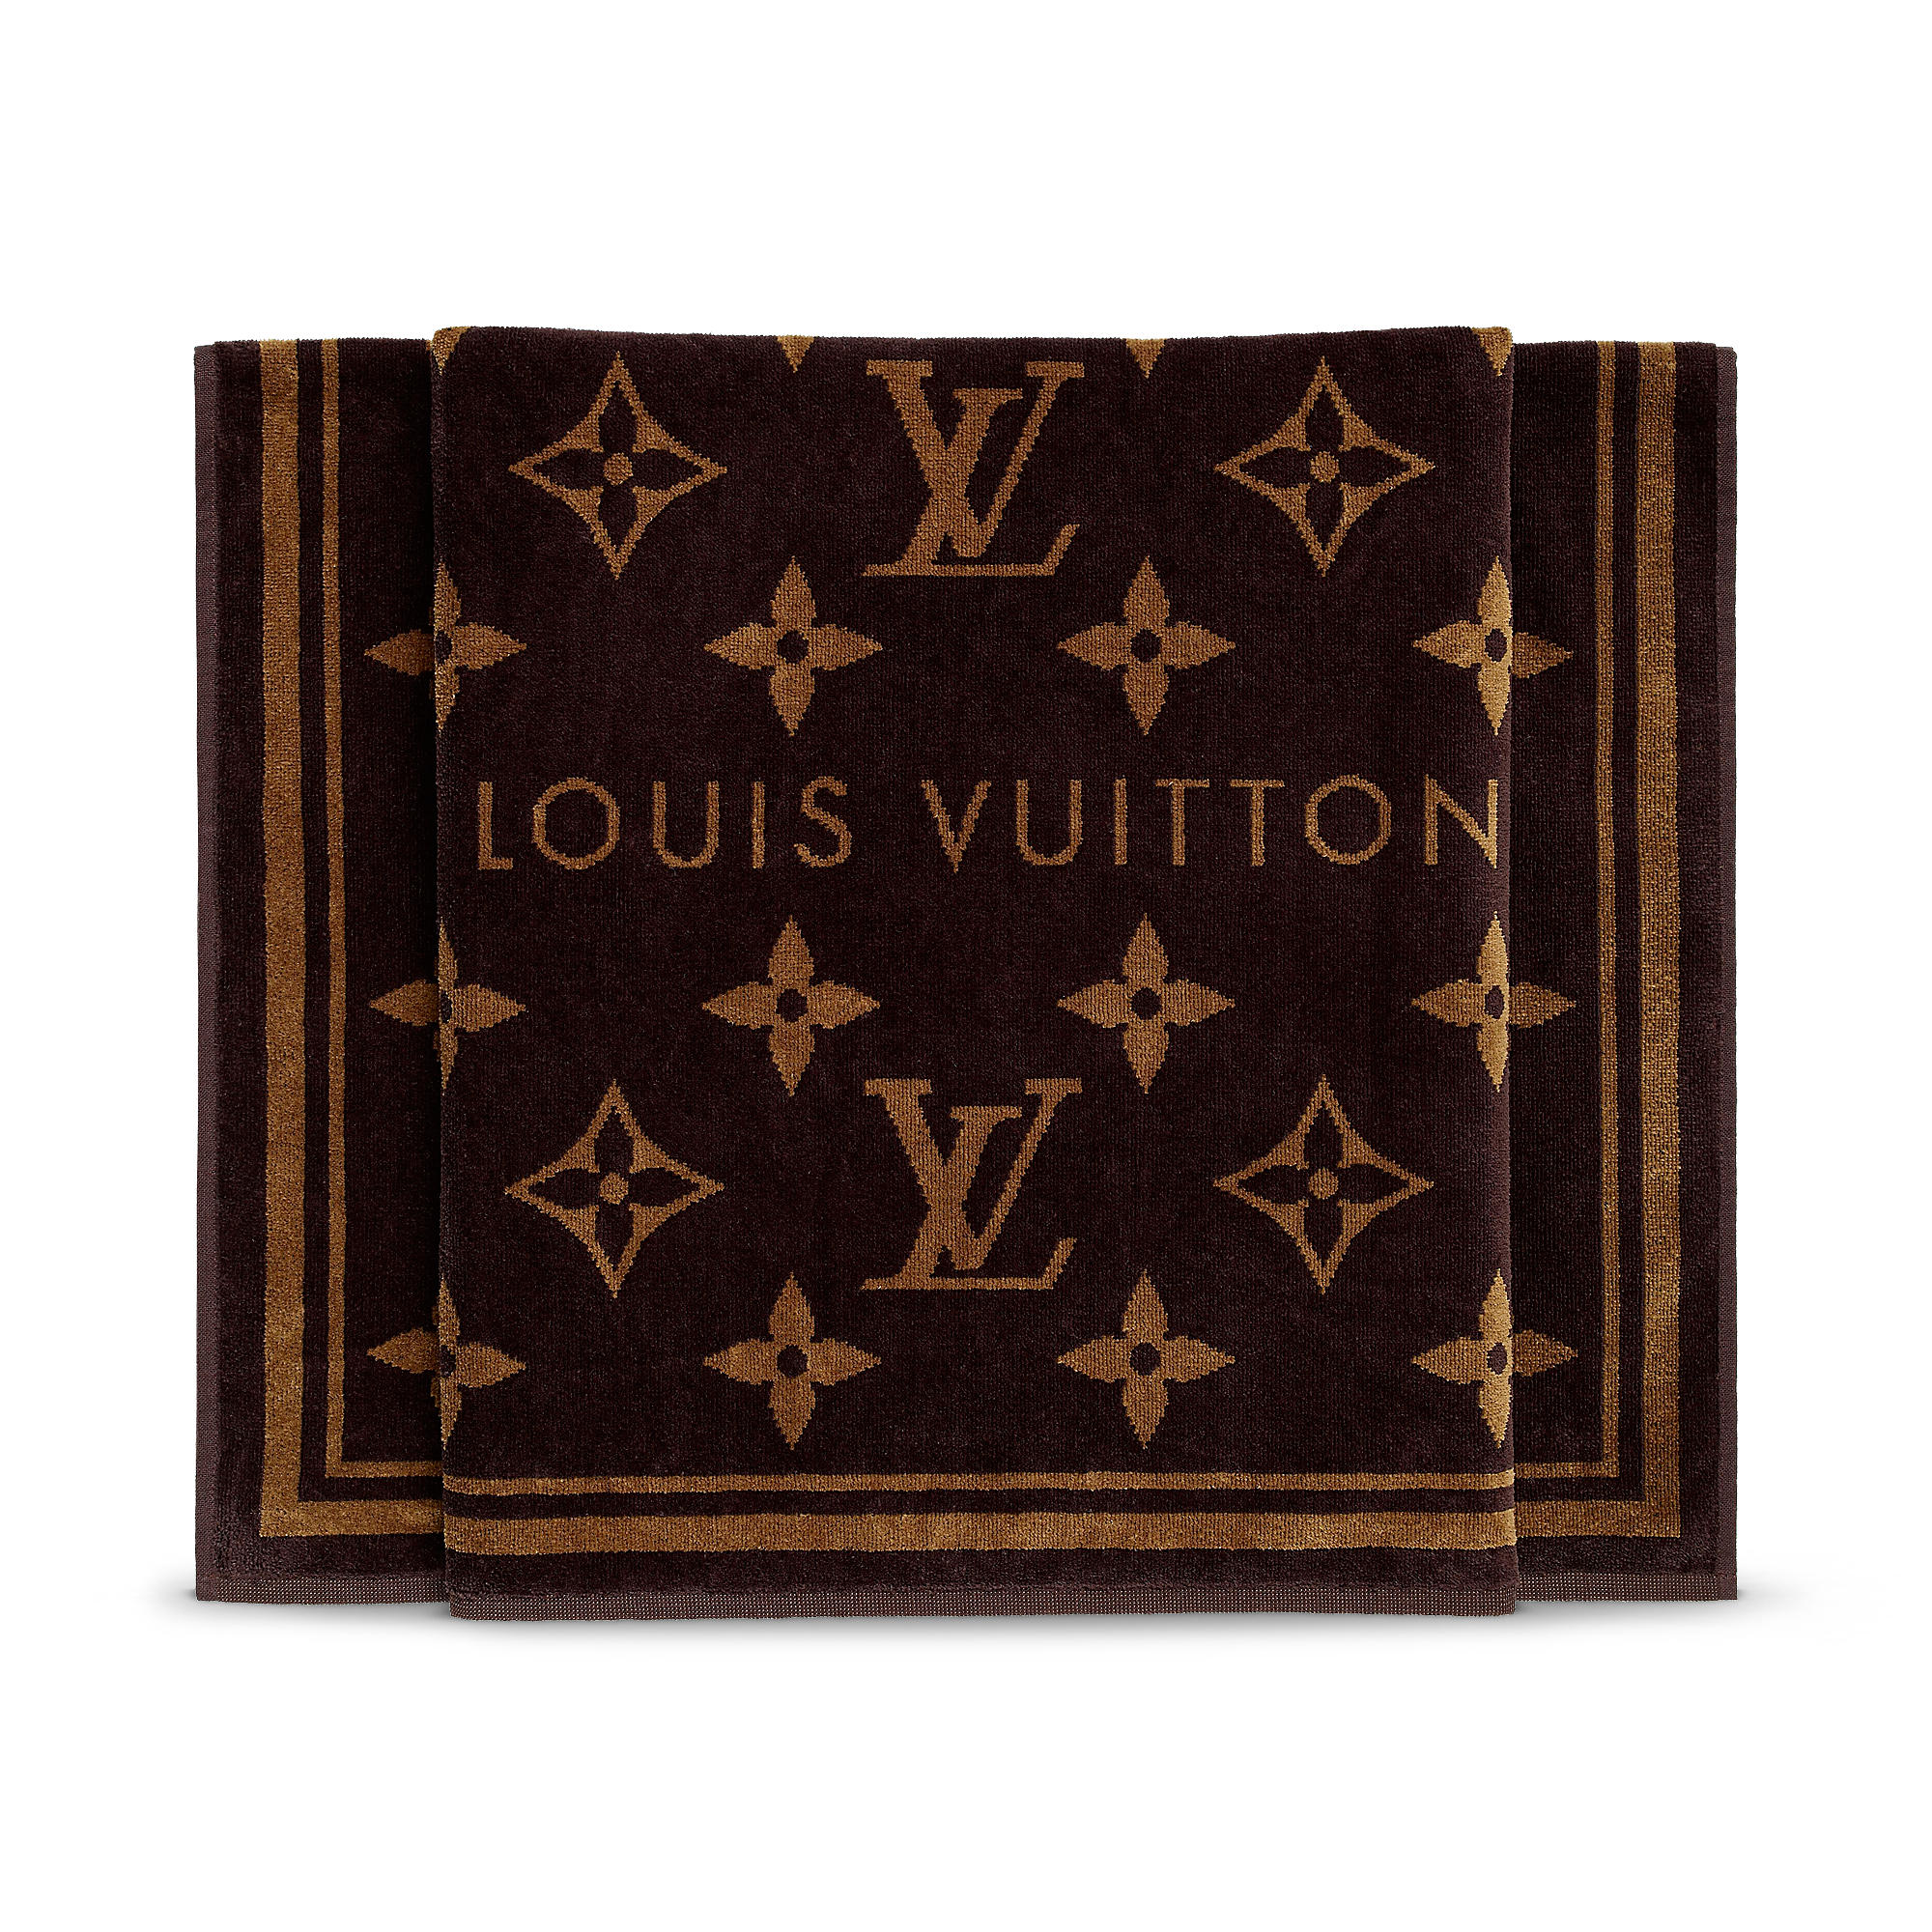 Louis Vuitton M72364 Telo Mare Monogram